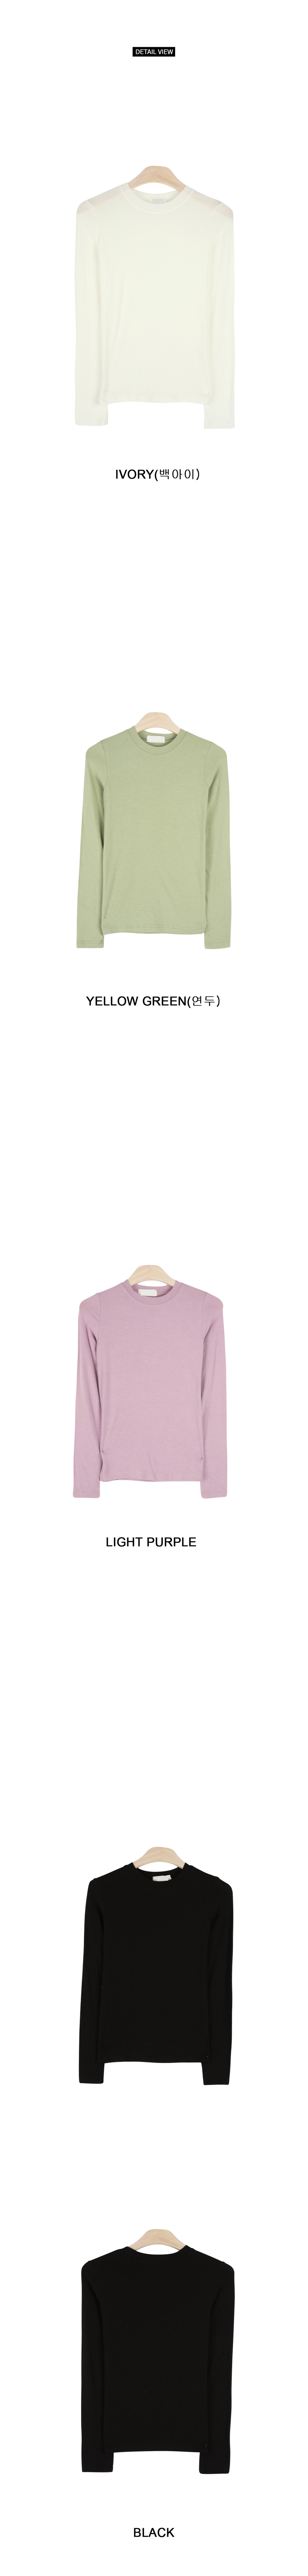 Long-sleeved polo shirts